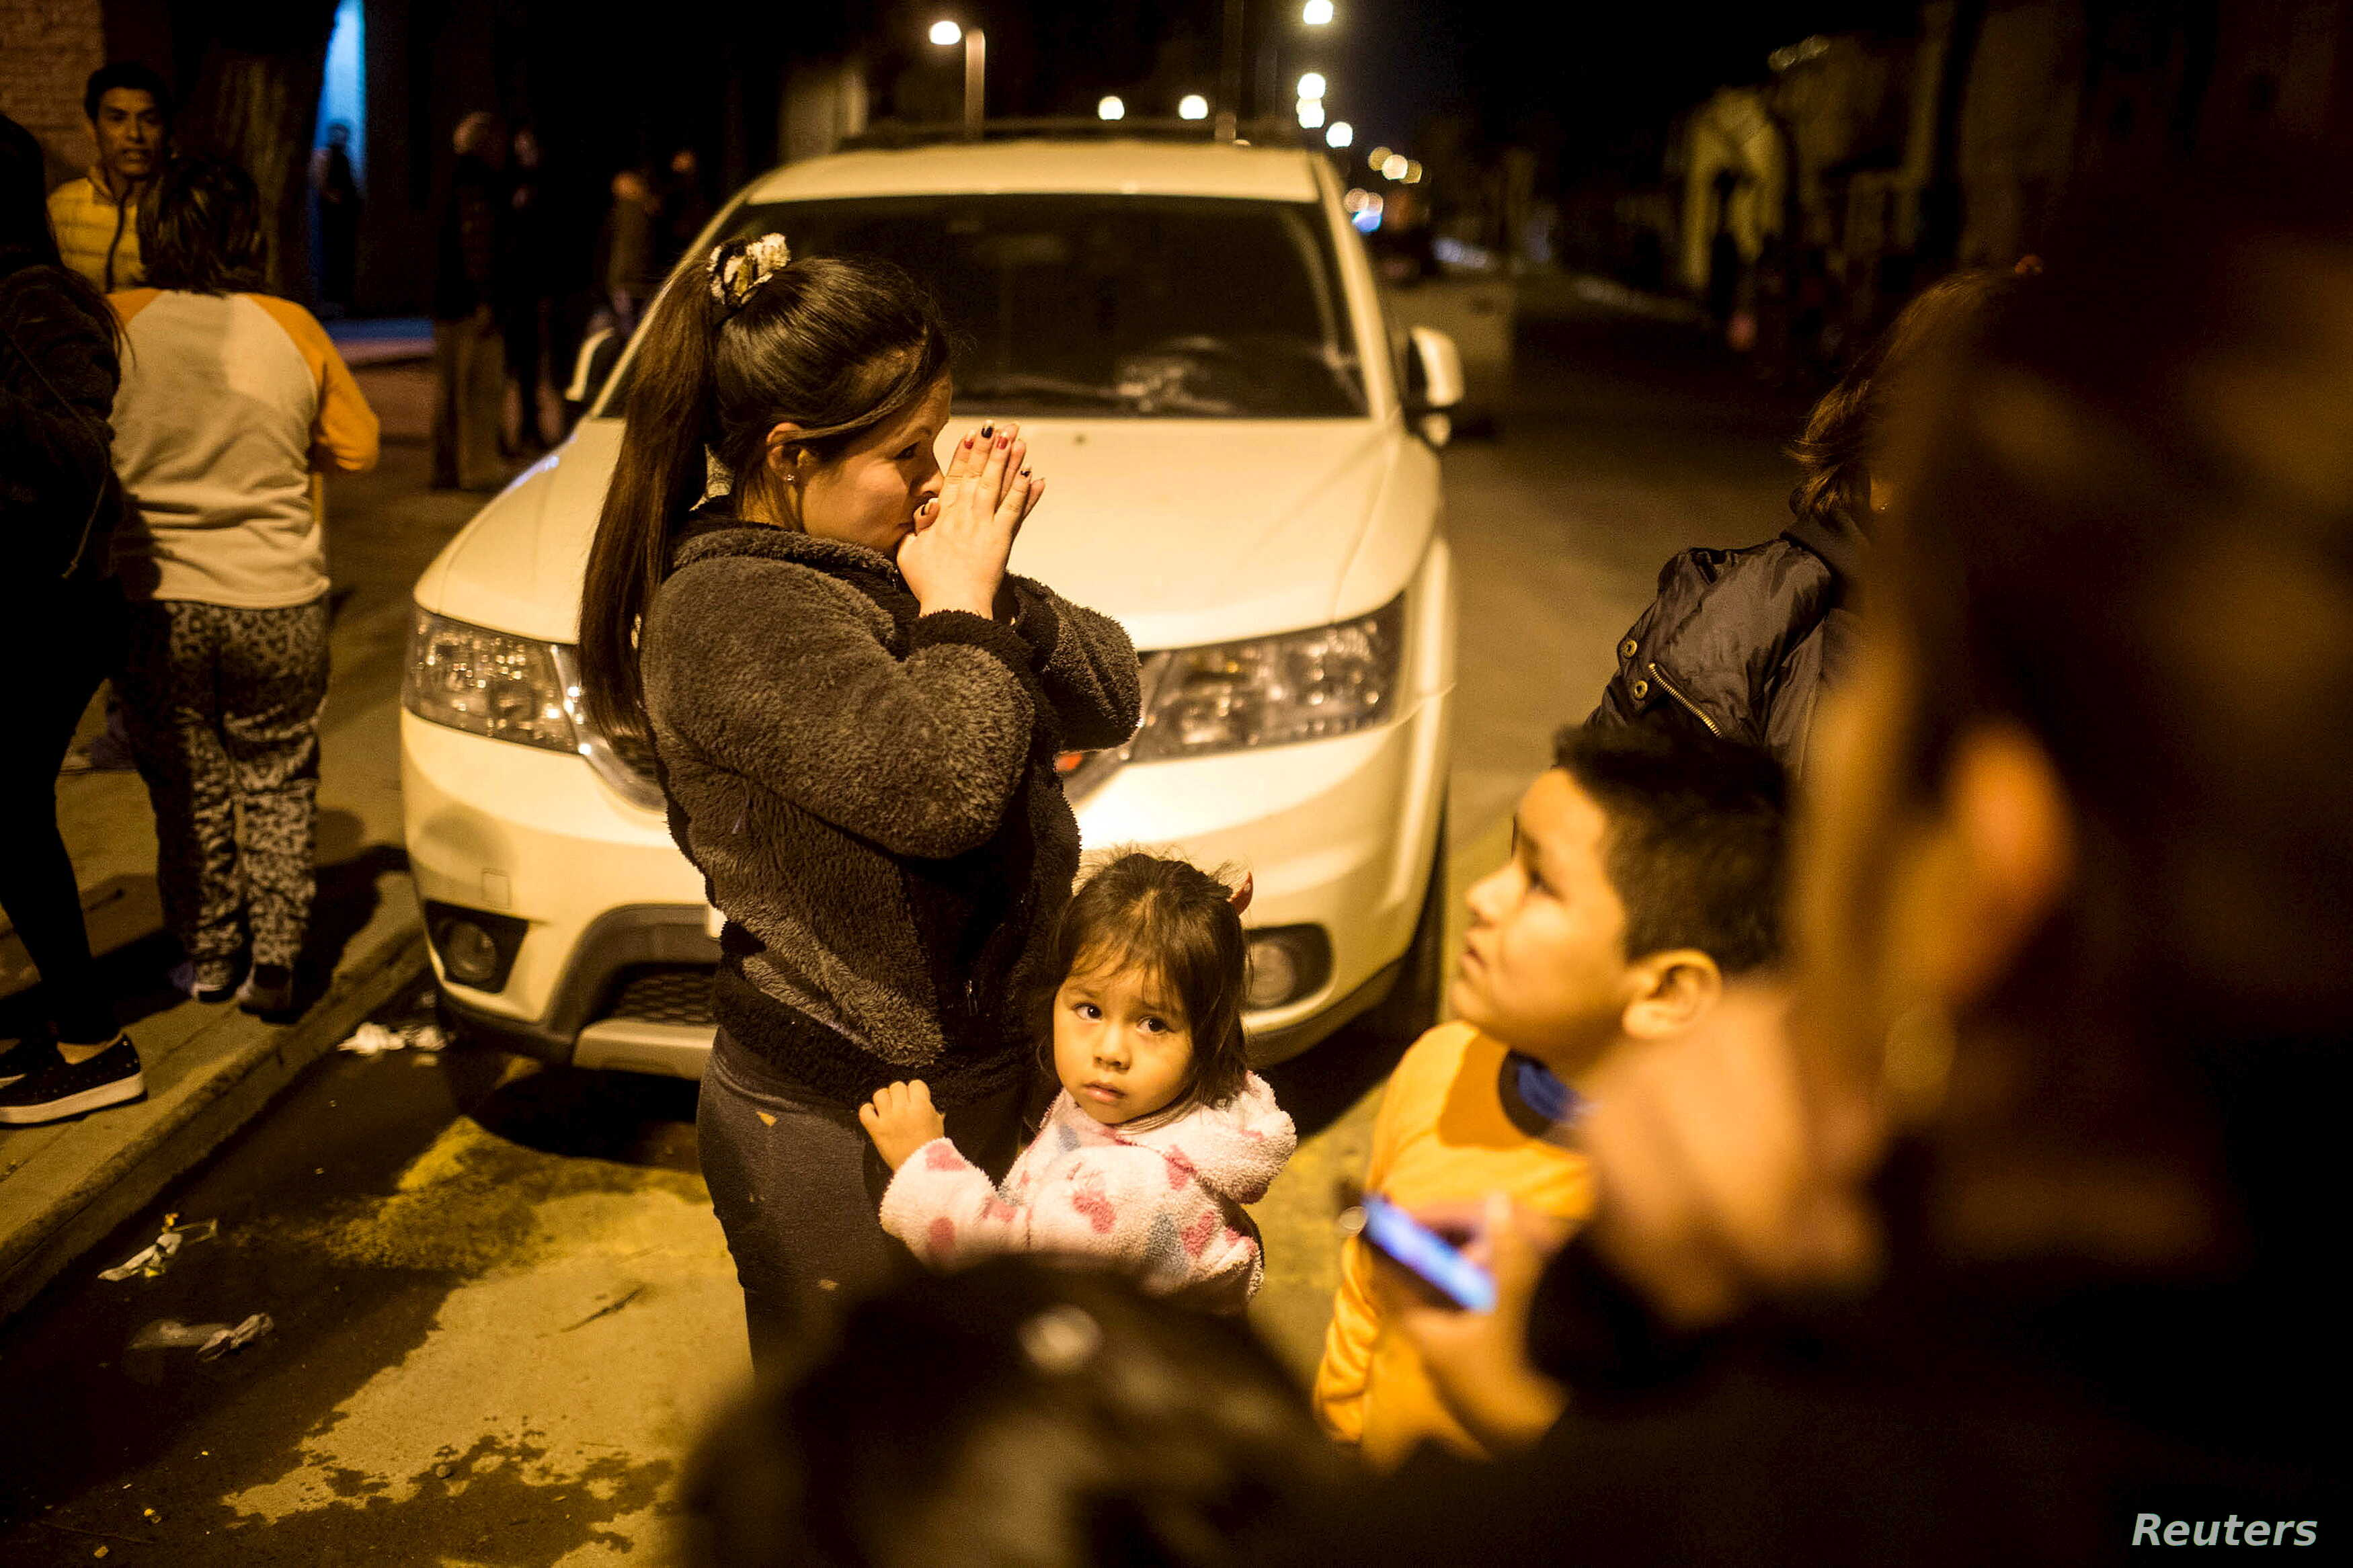 Residents stand on a street outside their houses after an earthquake hit Chile's central zone, Santiago, Sept. 16, 2015.